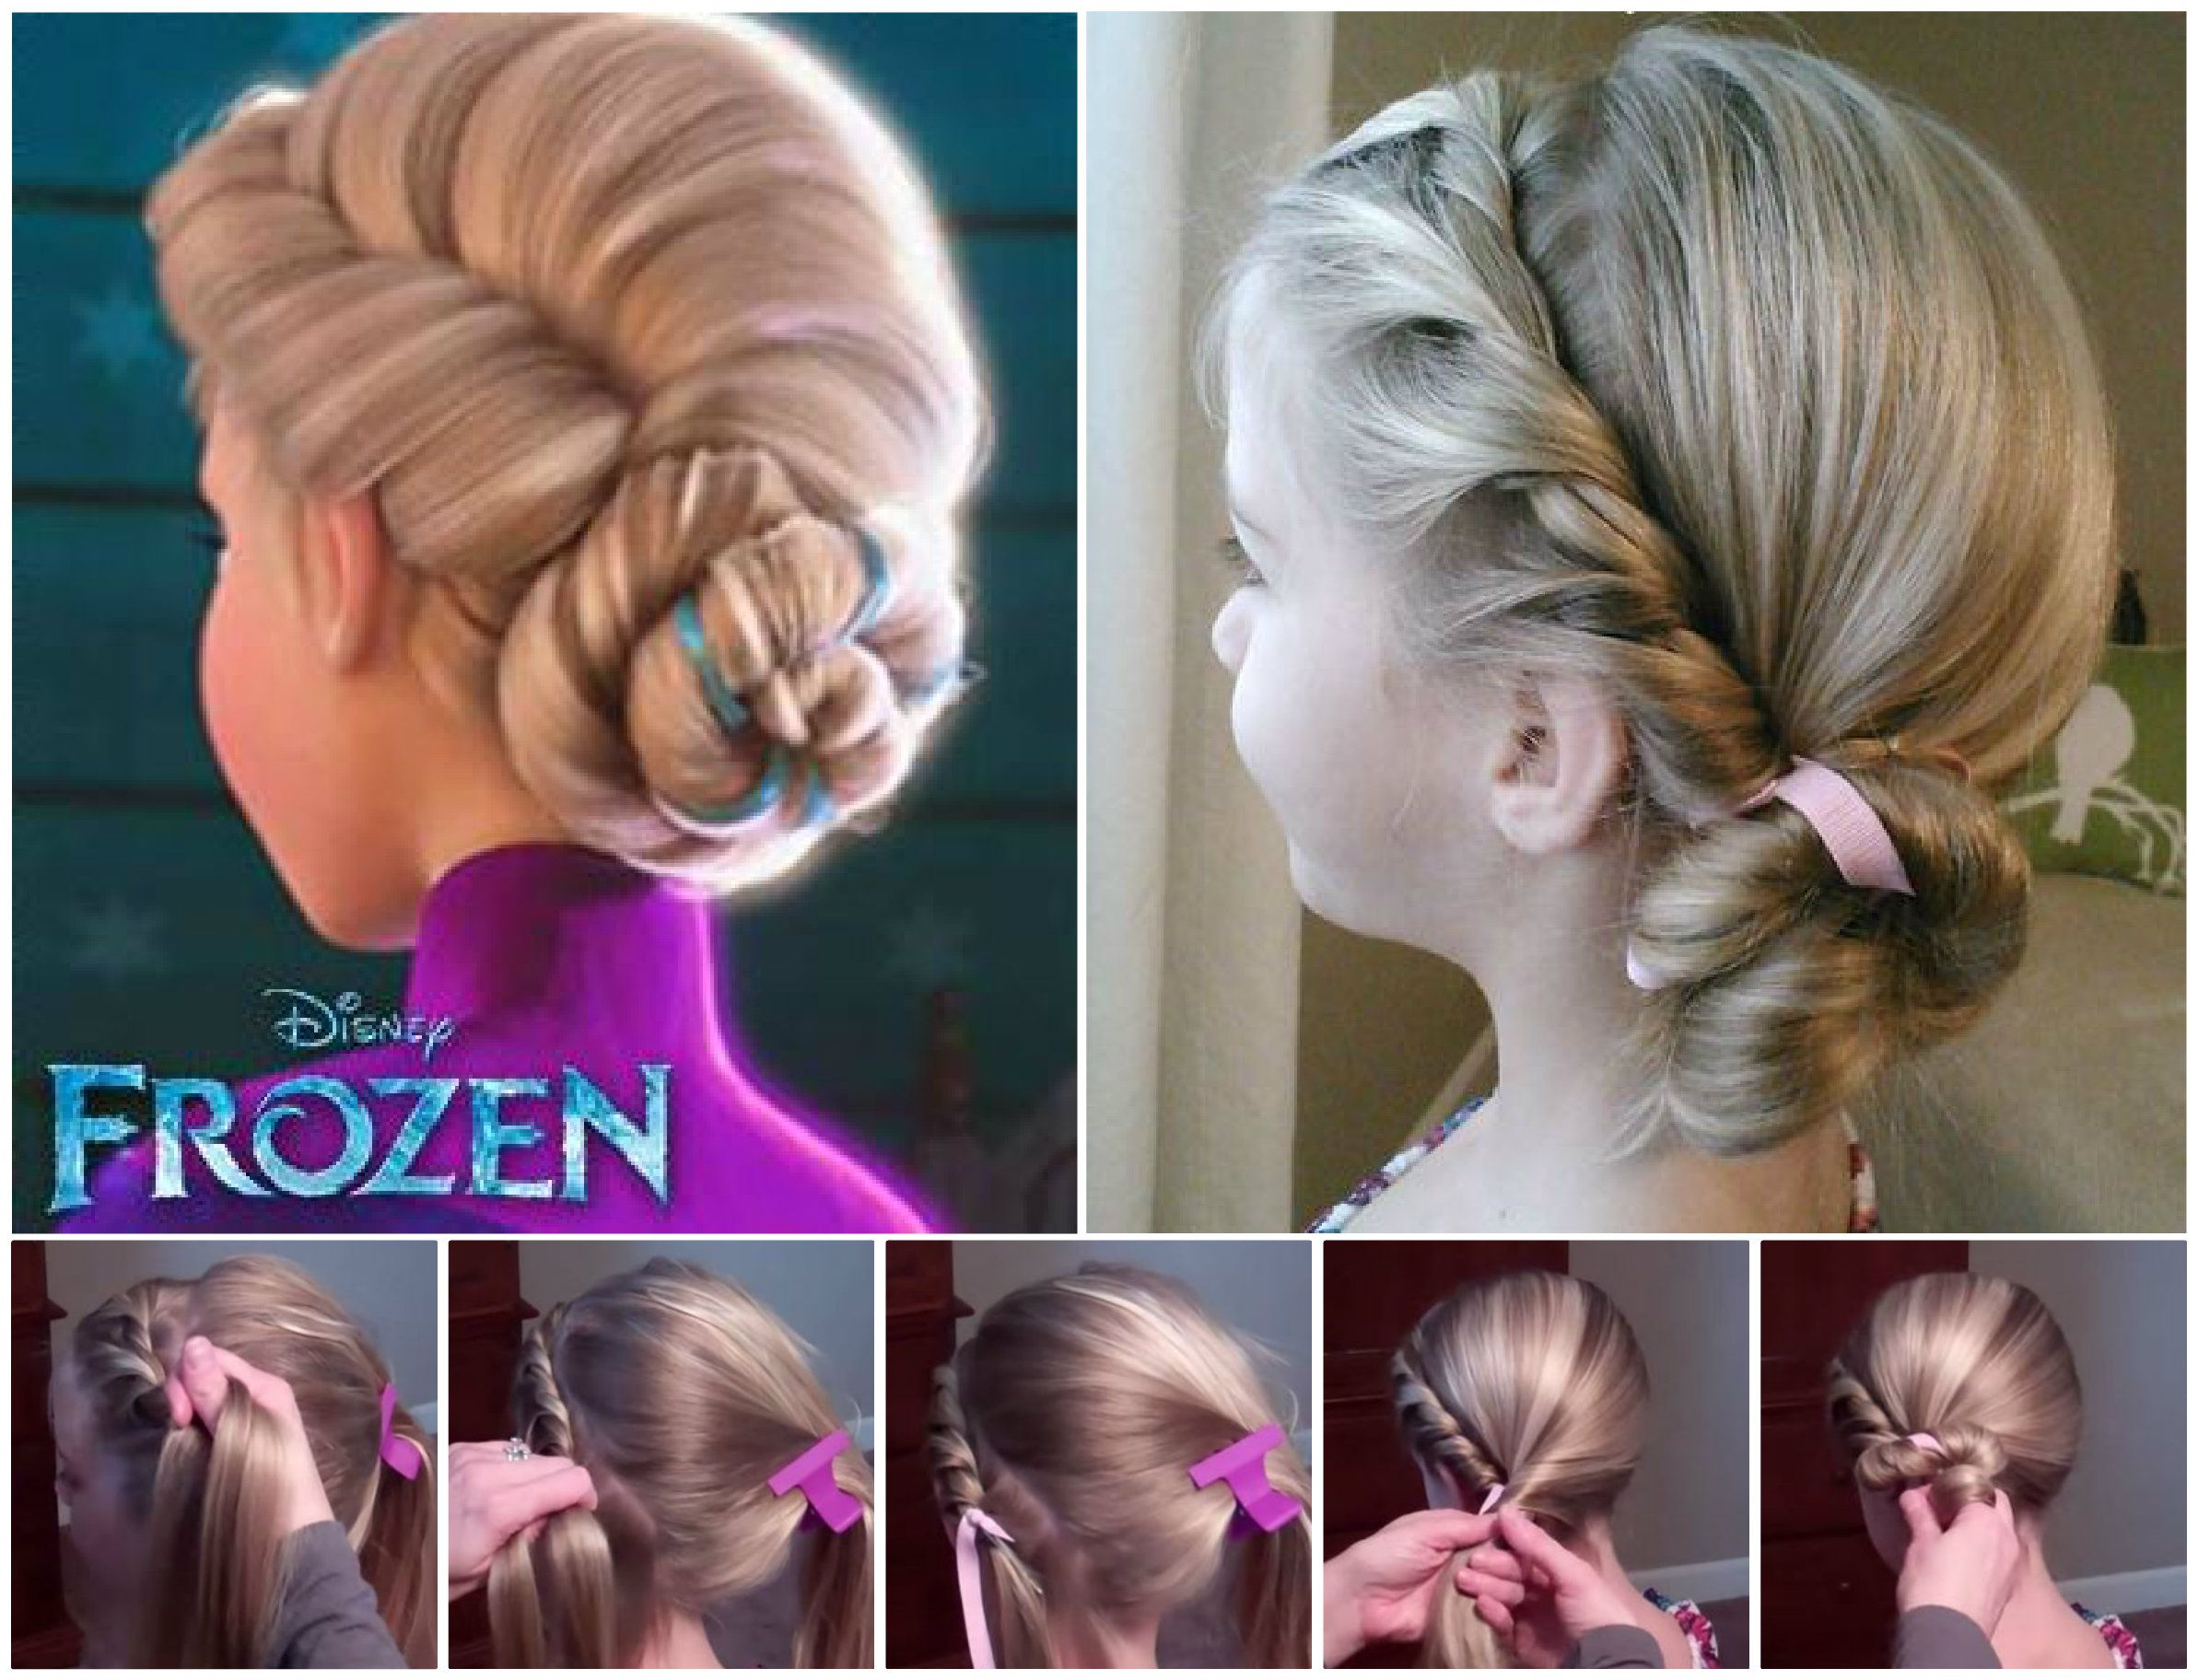 Super Frozen Hairstyles Frozen And Disney Frozen On Pinterest Short Hairstyles For Black Women Fulllsitofus